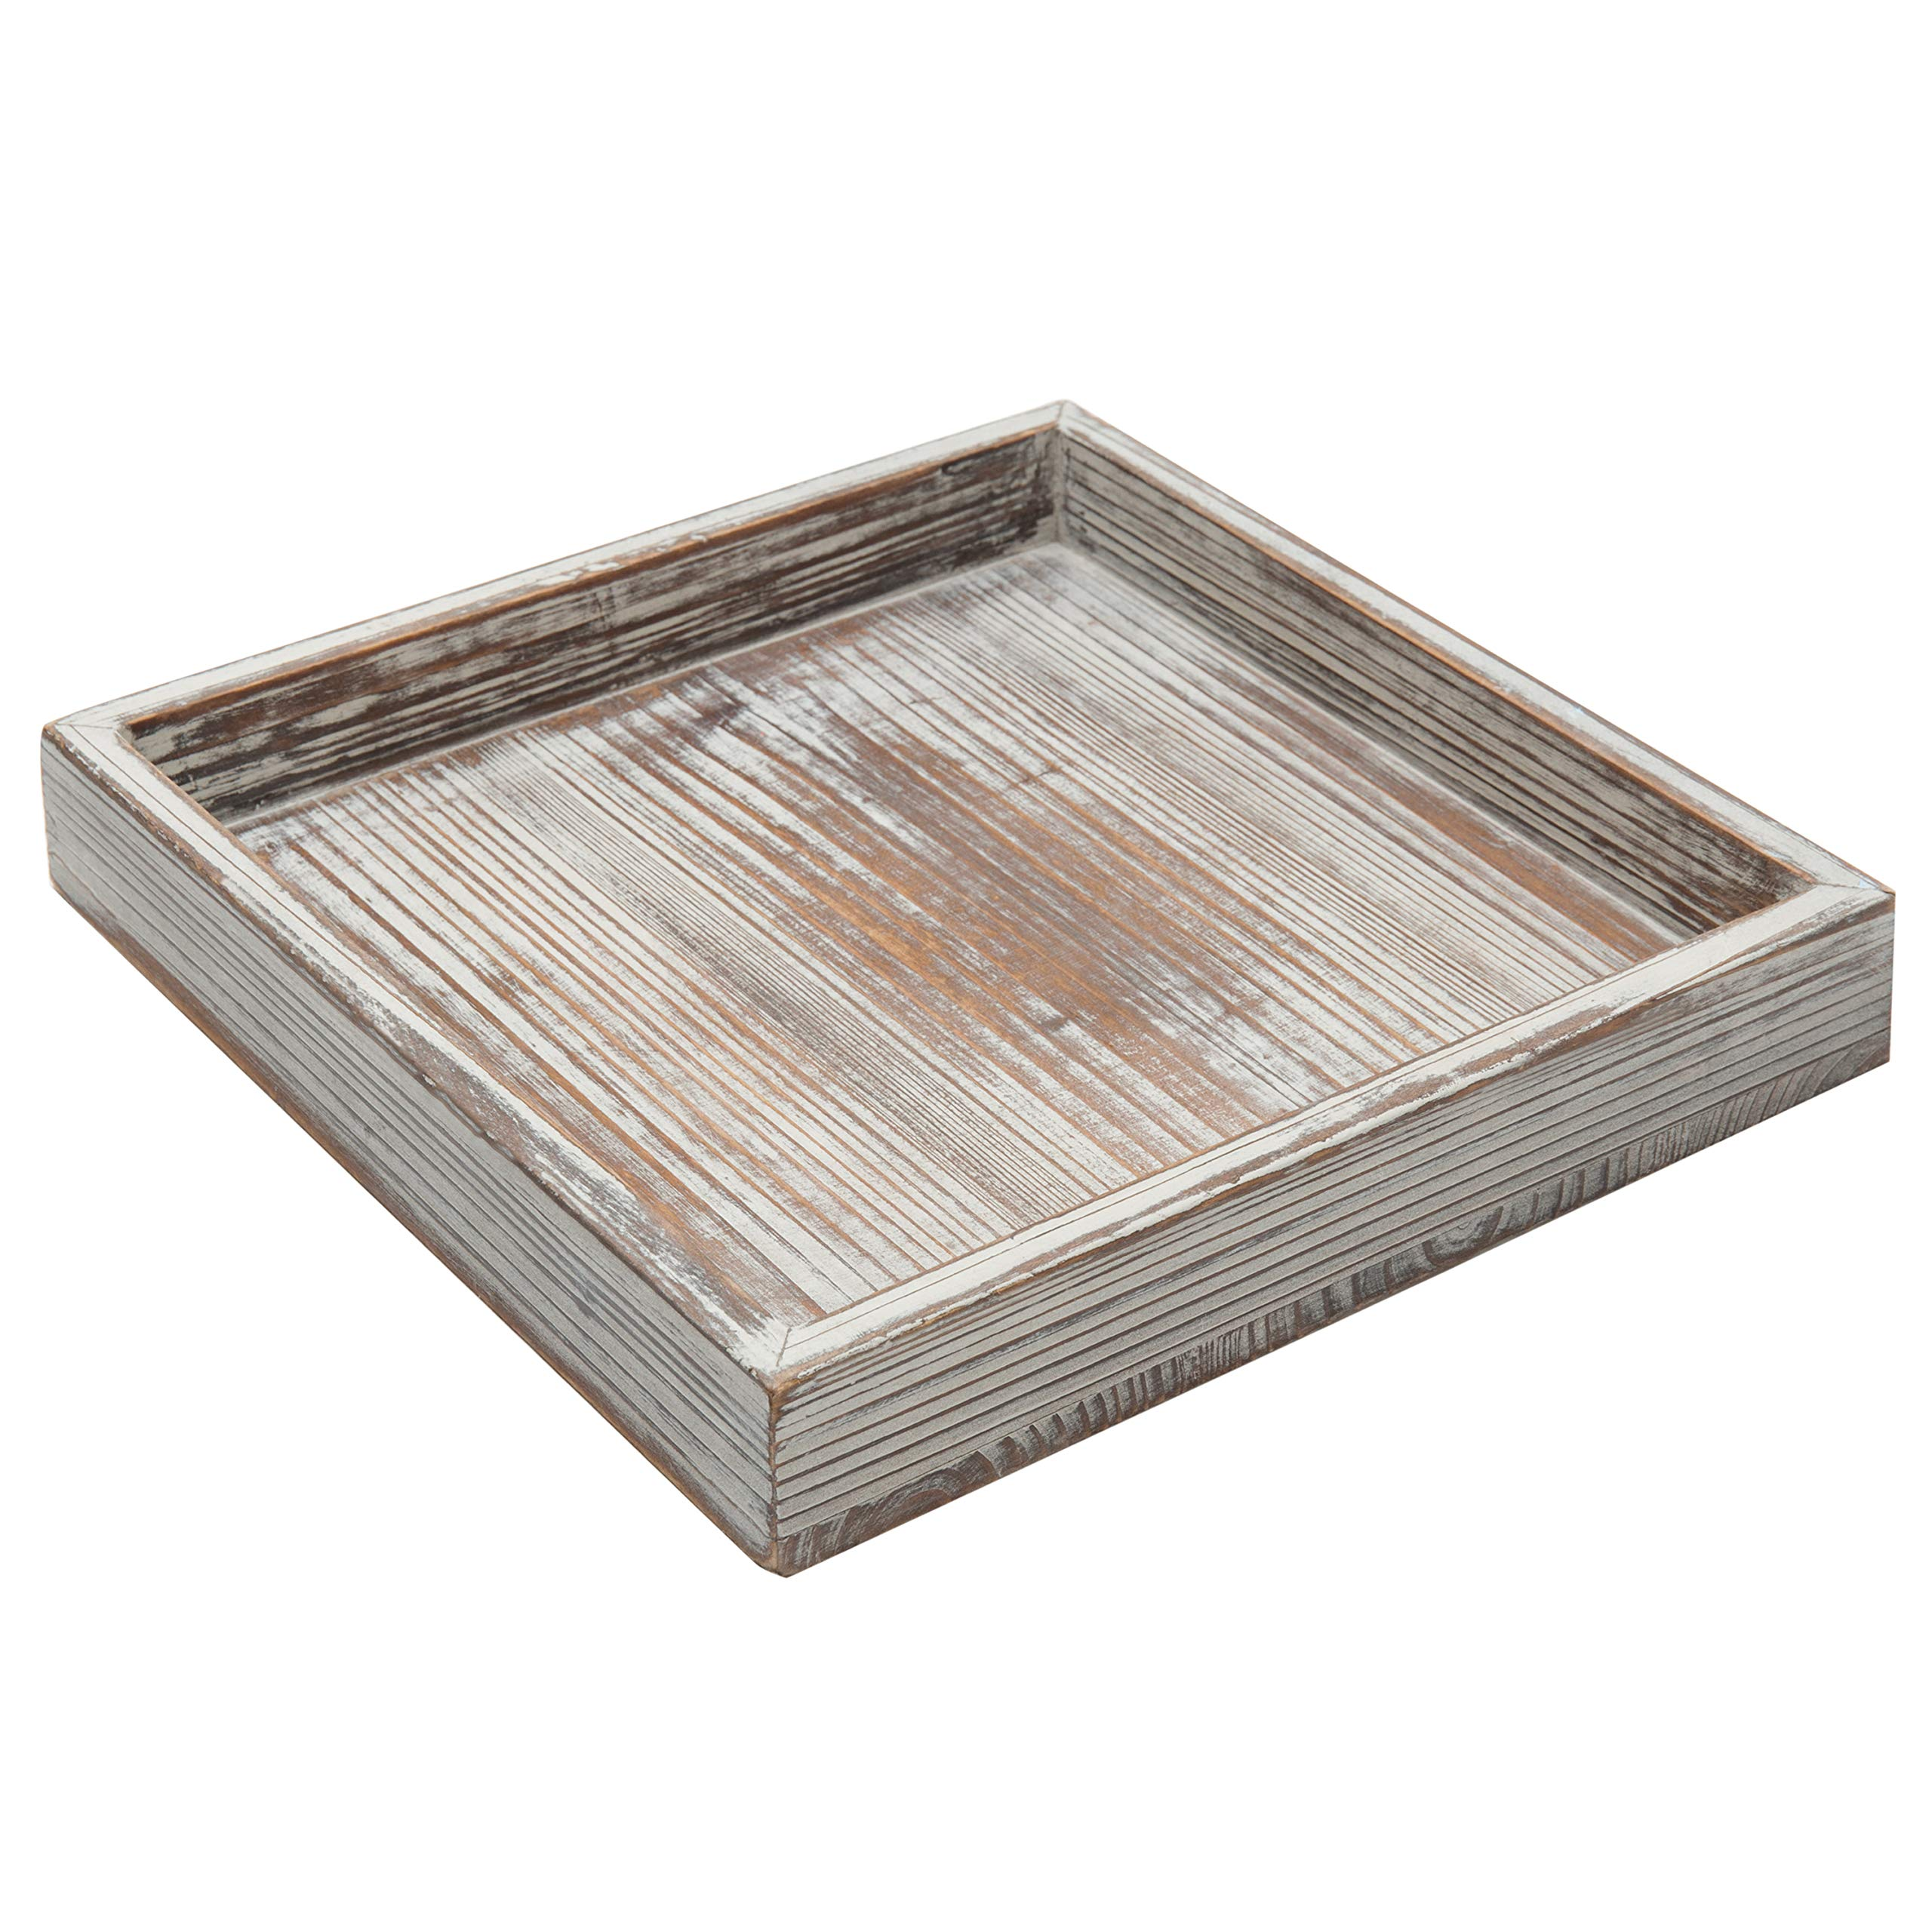 MyGift 10 inch Torched Wood Decorative Tray, Ottoman Coffee Table Accent